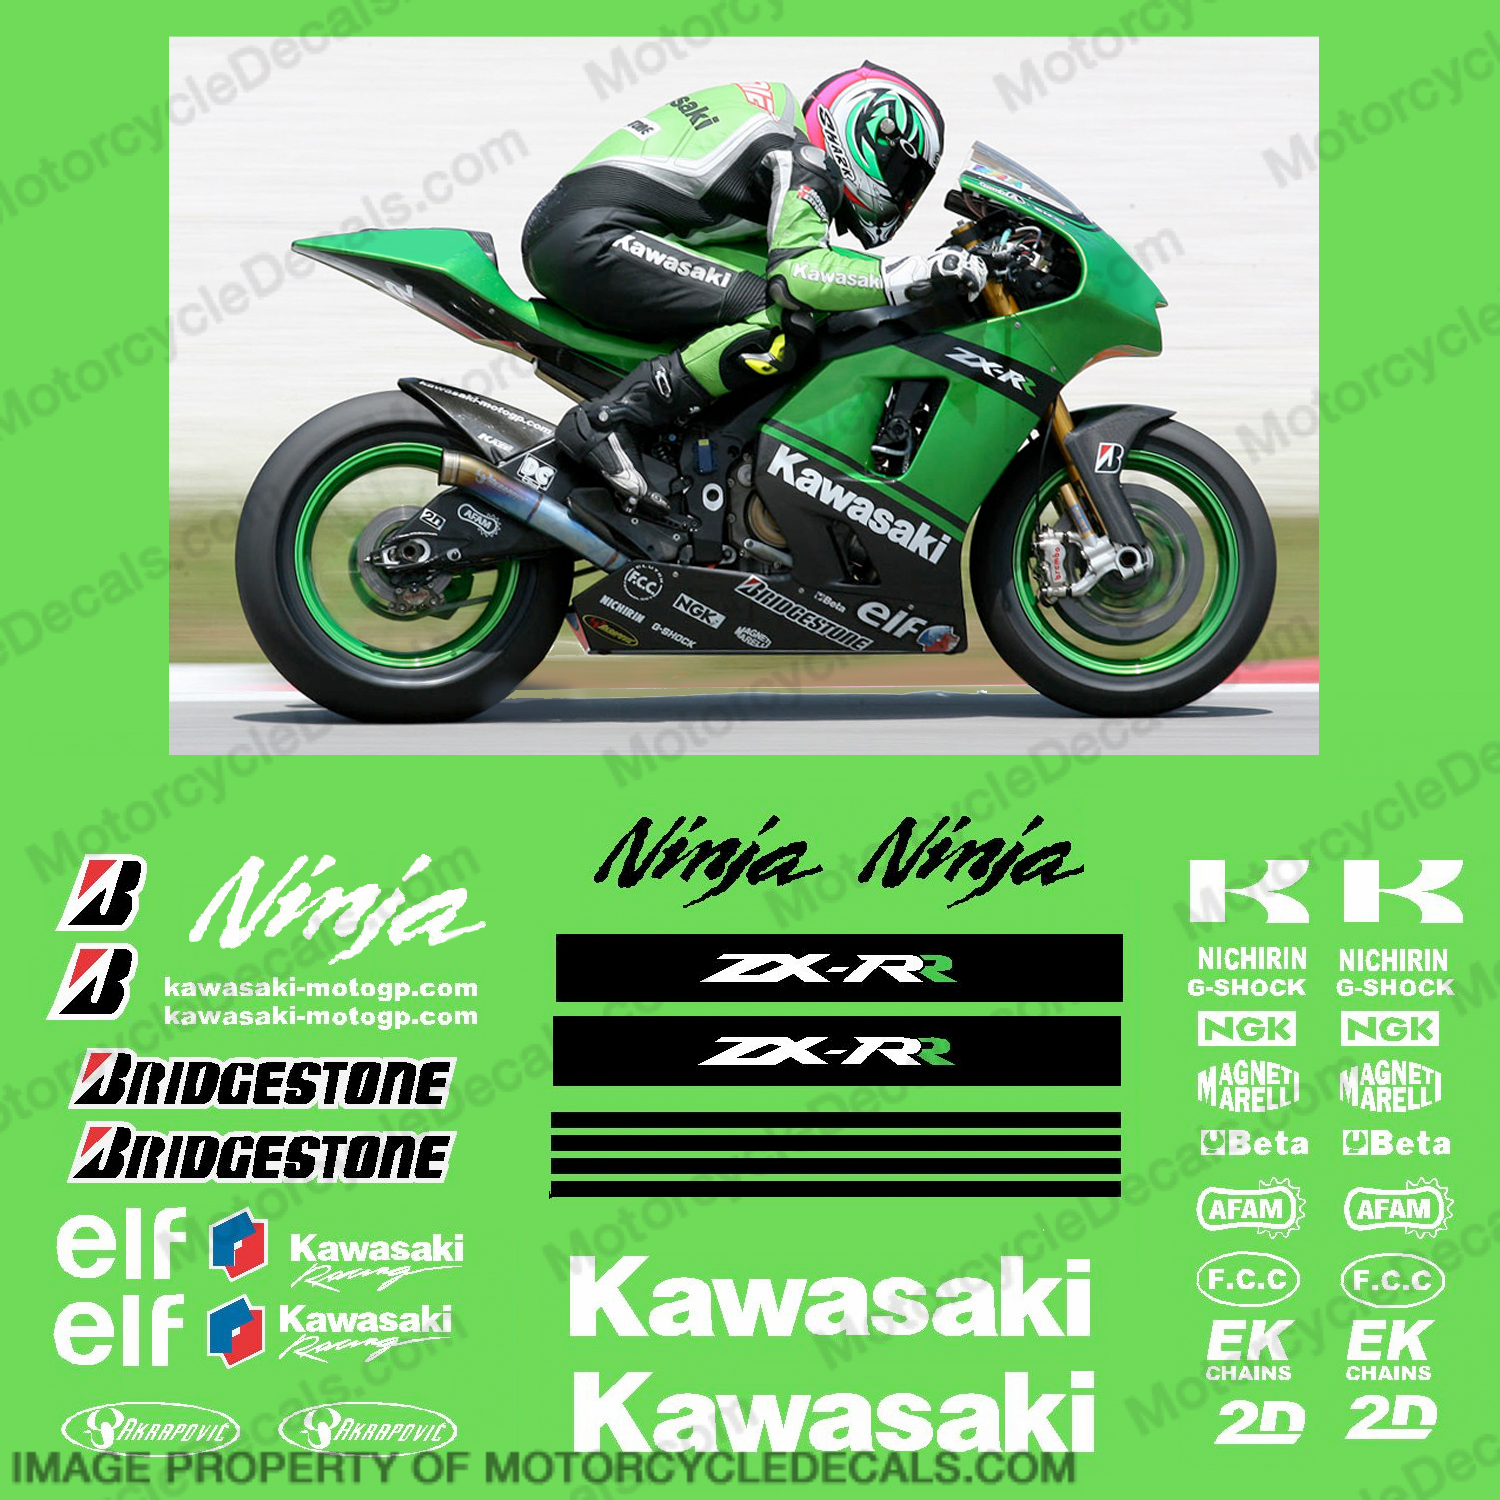 Kawasaki Kawasaki Motogp Race Decal Kit 2007 R K Zx Rr 07